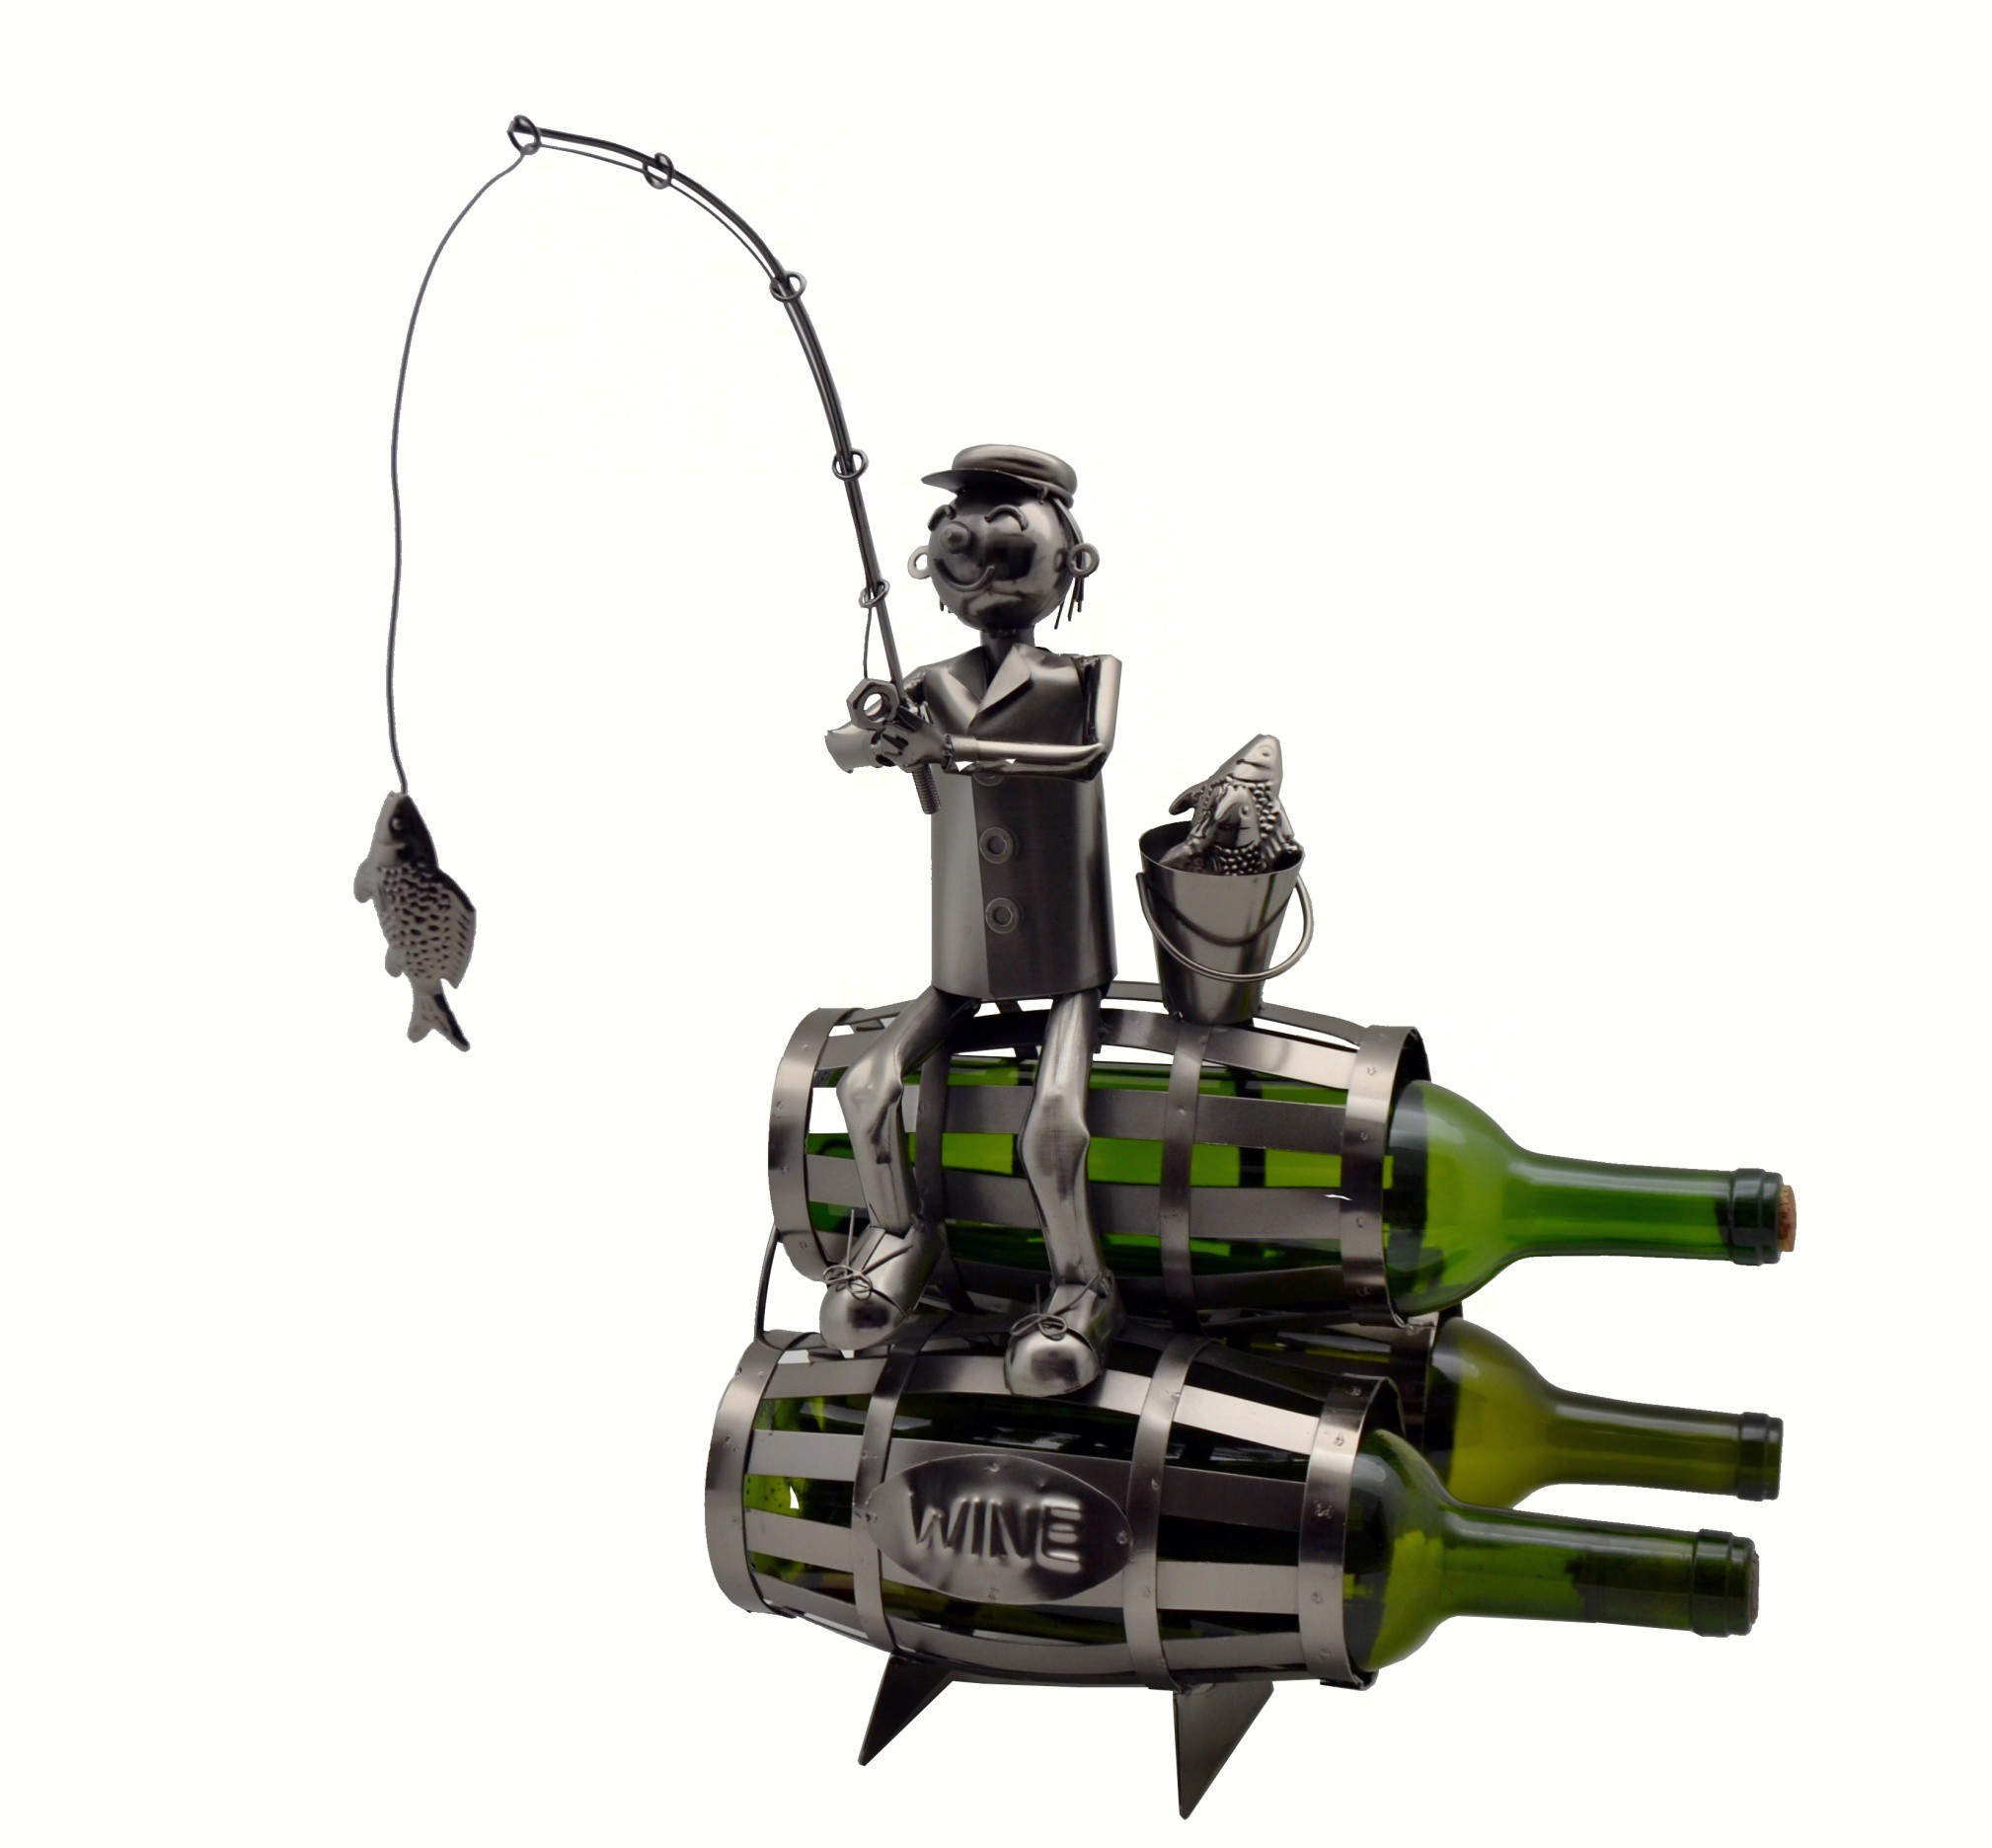 Fisherman on 3 Barrels Wine Bottle Holder